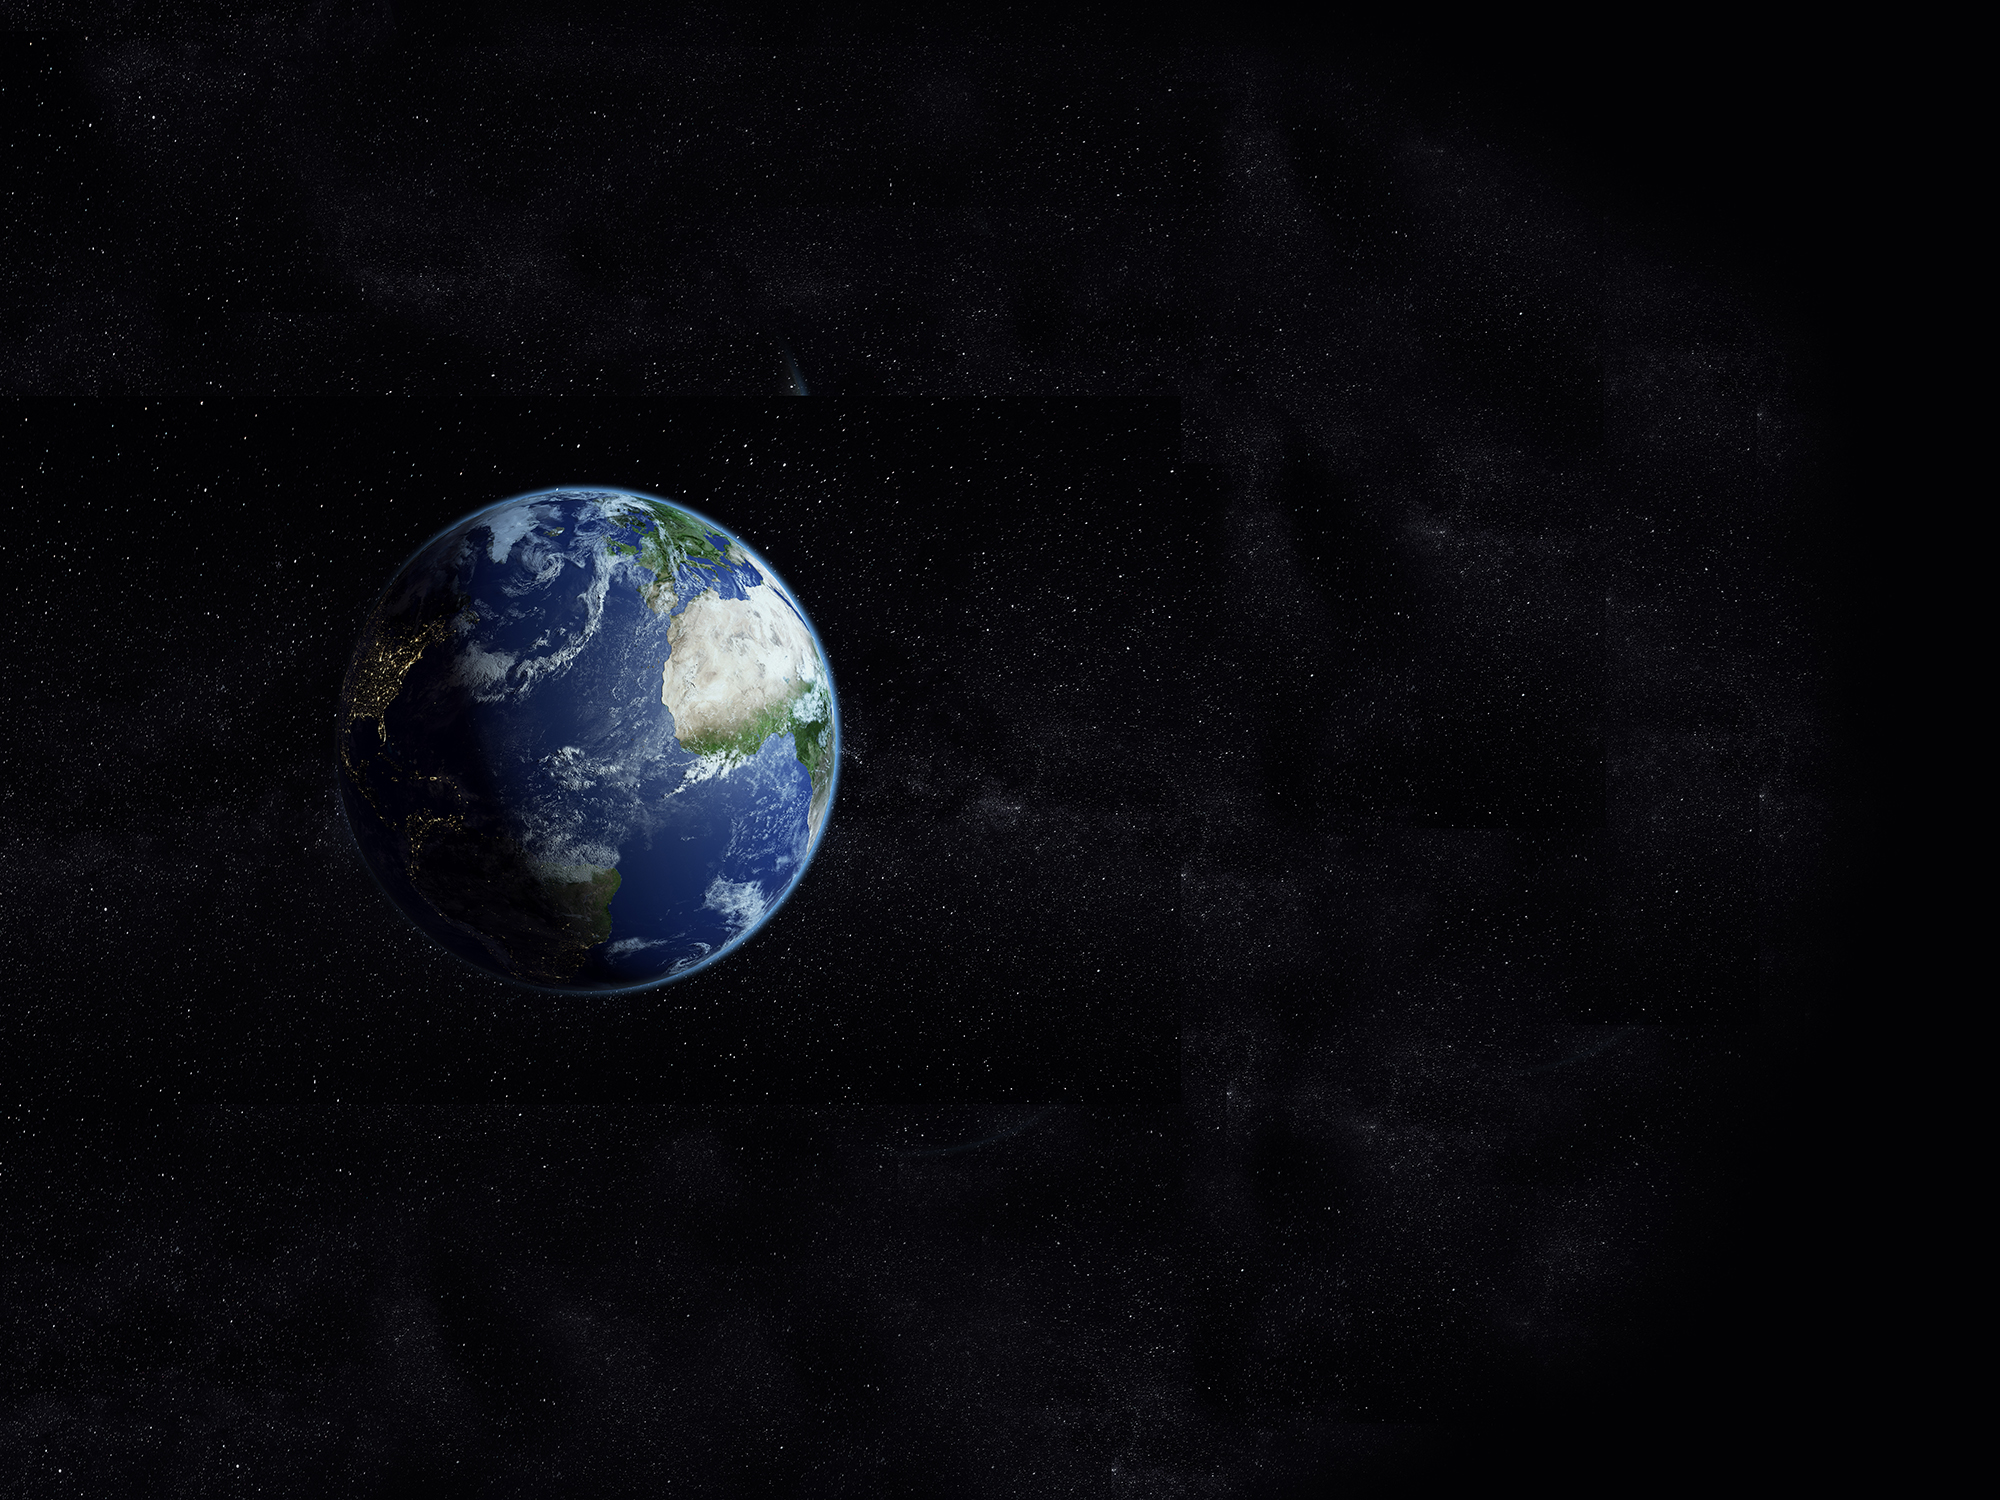 Great image of the earth. The shadow shows the night and the day